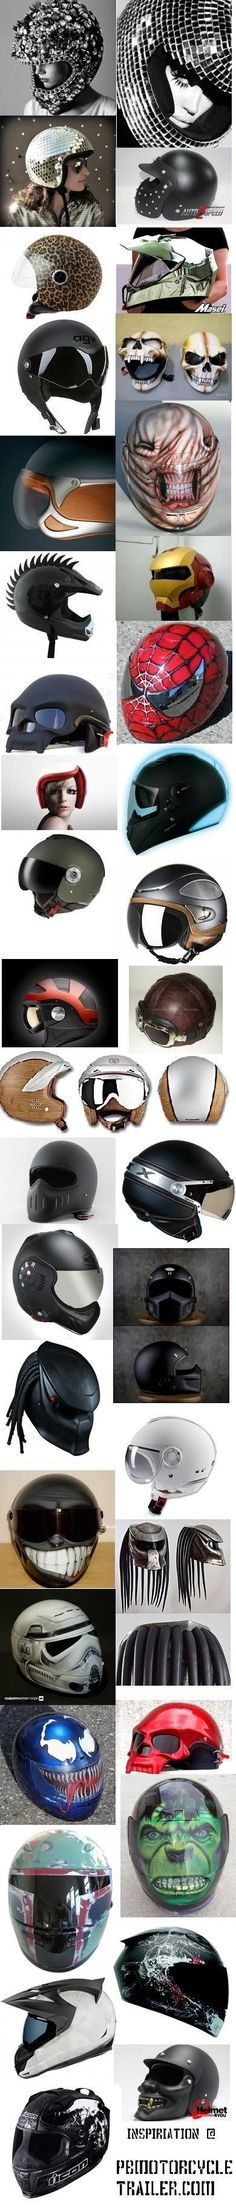 Helmet dreams. | Pull Behind Motorcycle Trailers